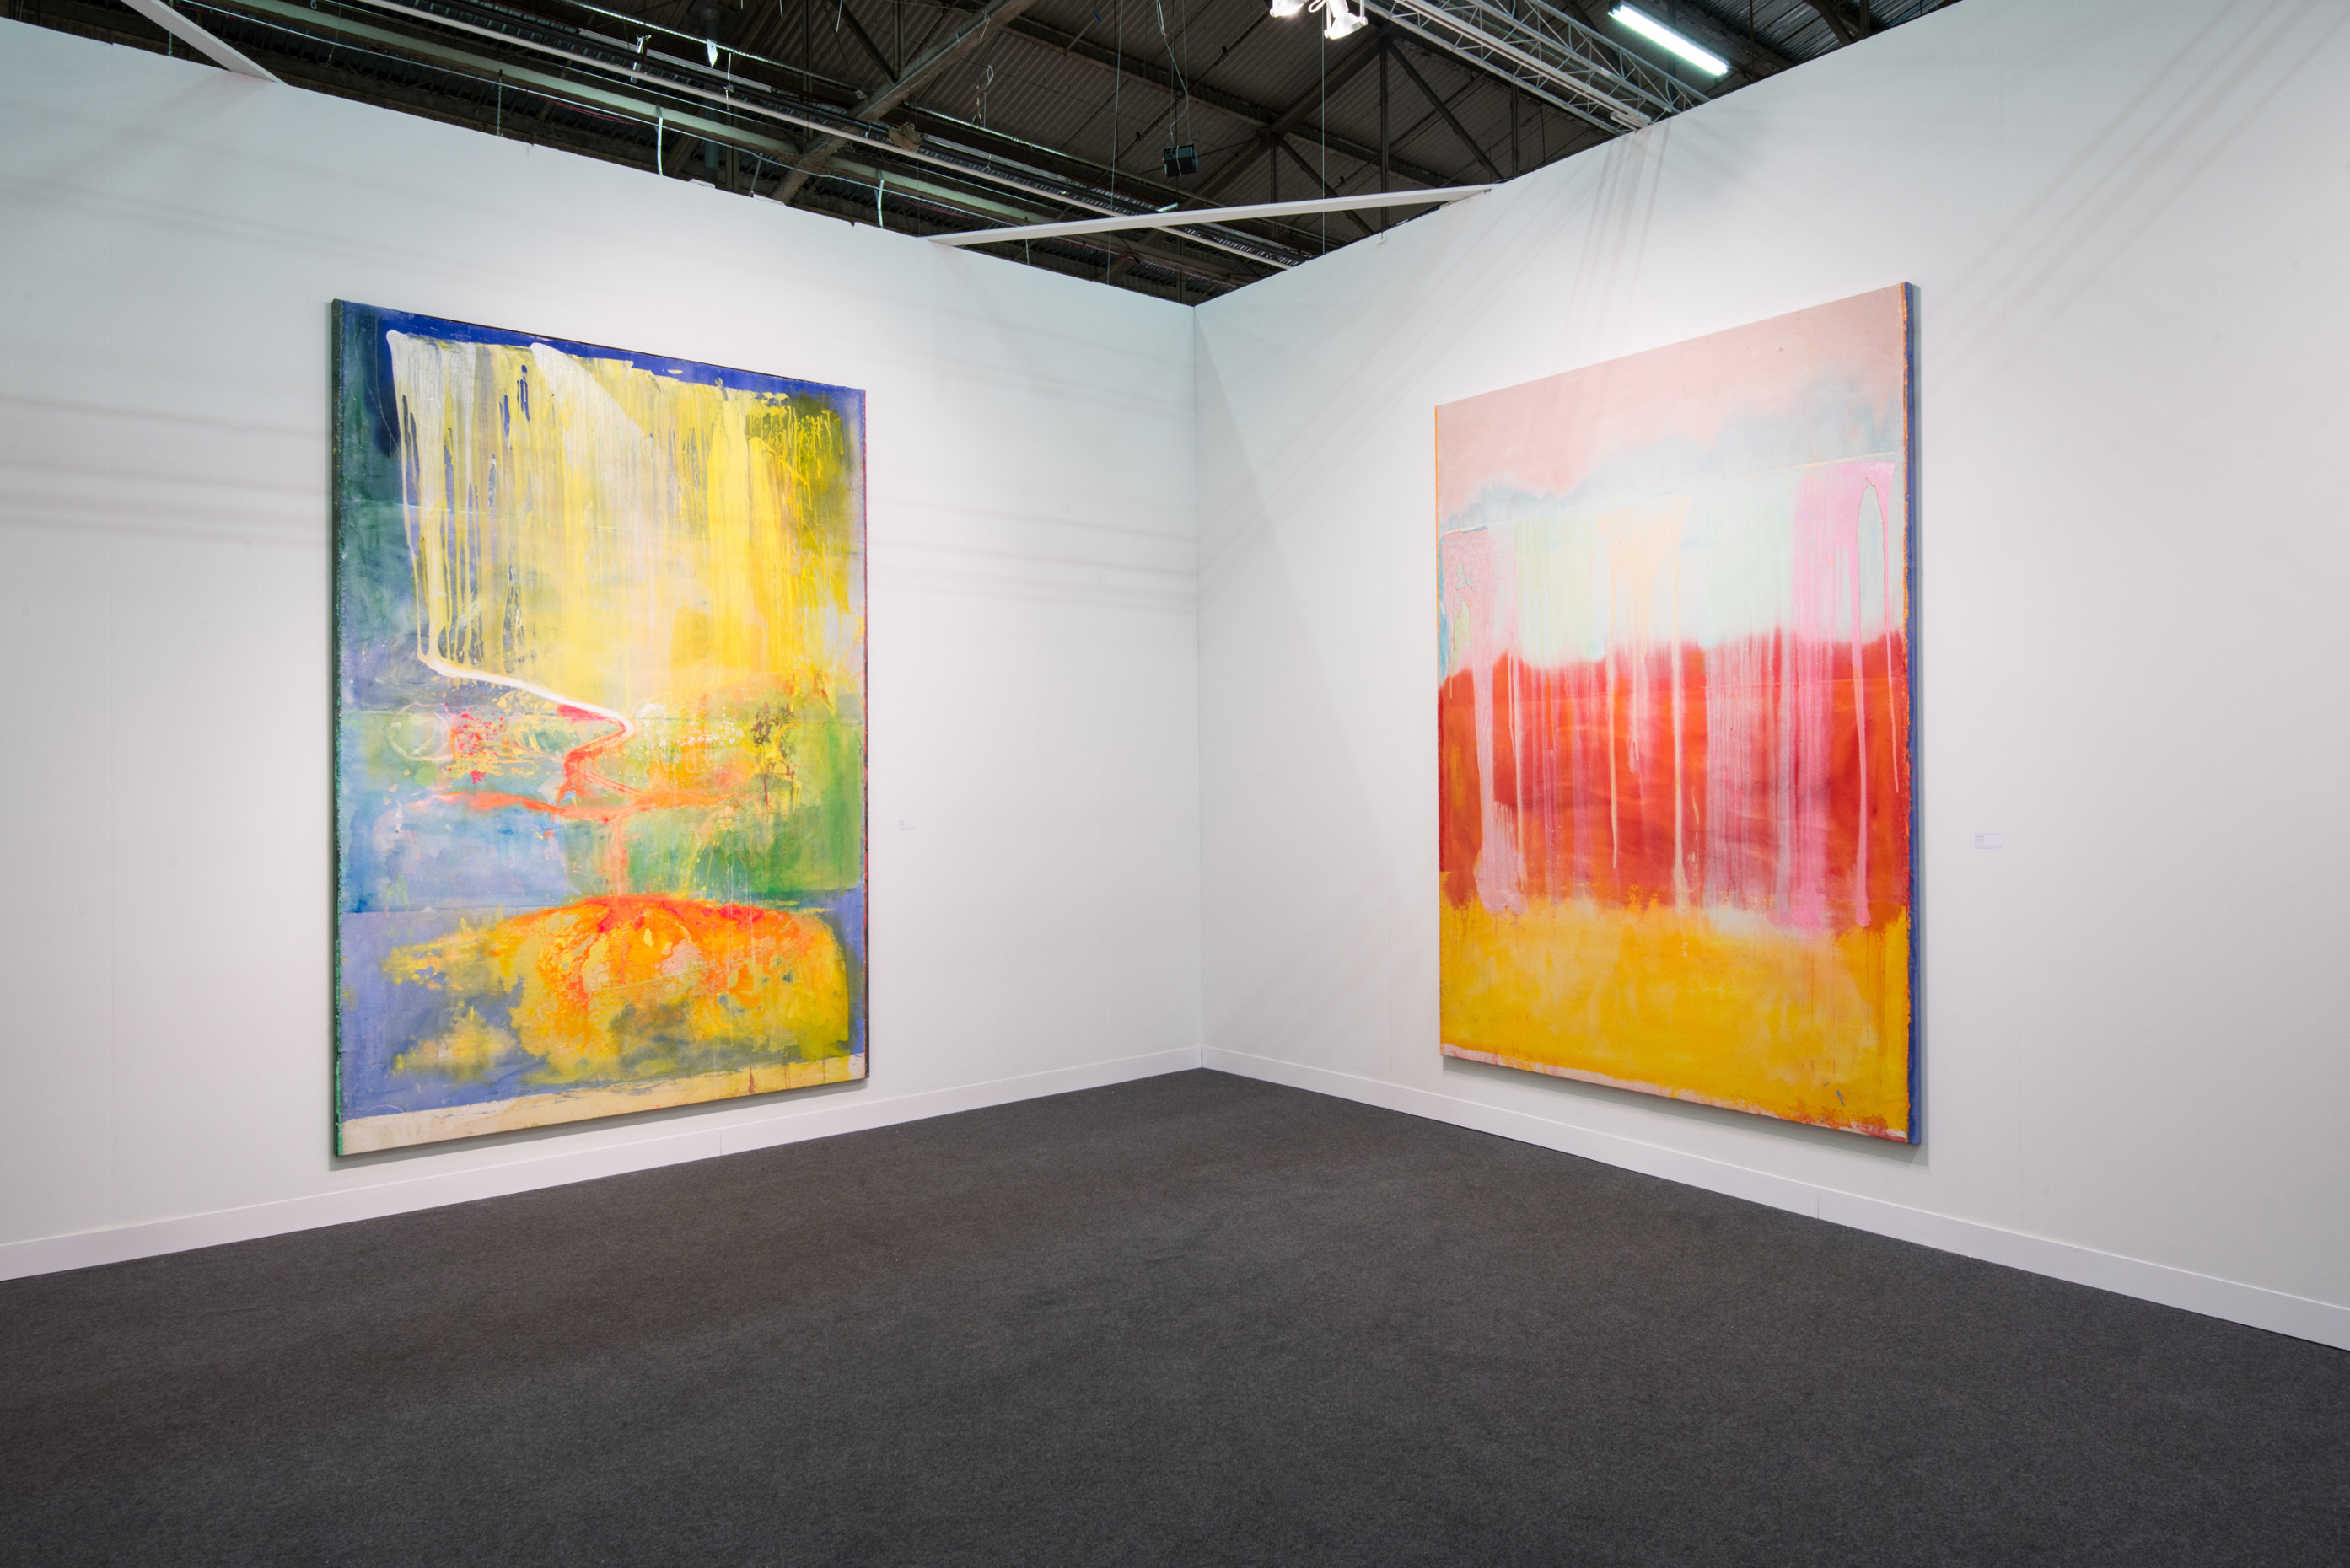 Installation view, Hales Gallery at The Armory Show 2016 | Pier 94 Booth 743, New York, 3 - 6 March 2016